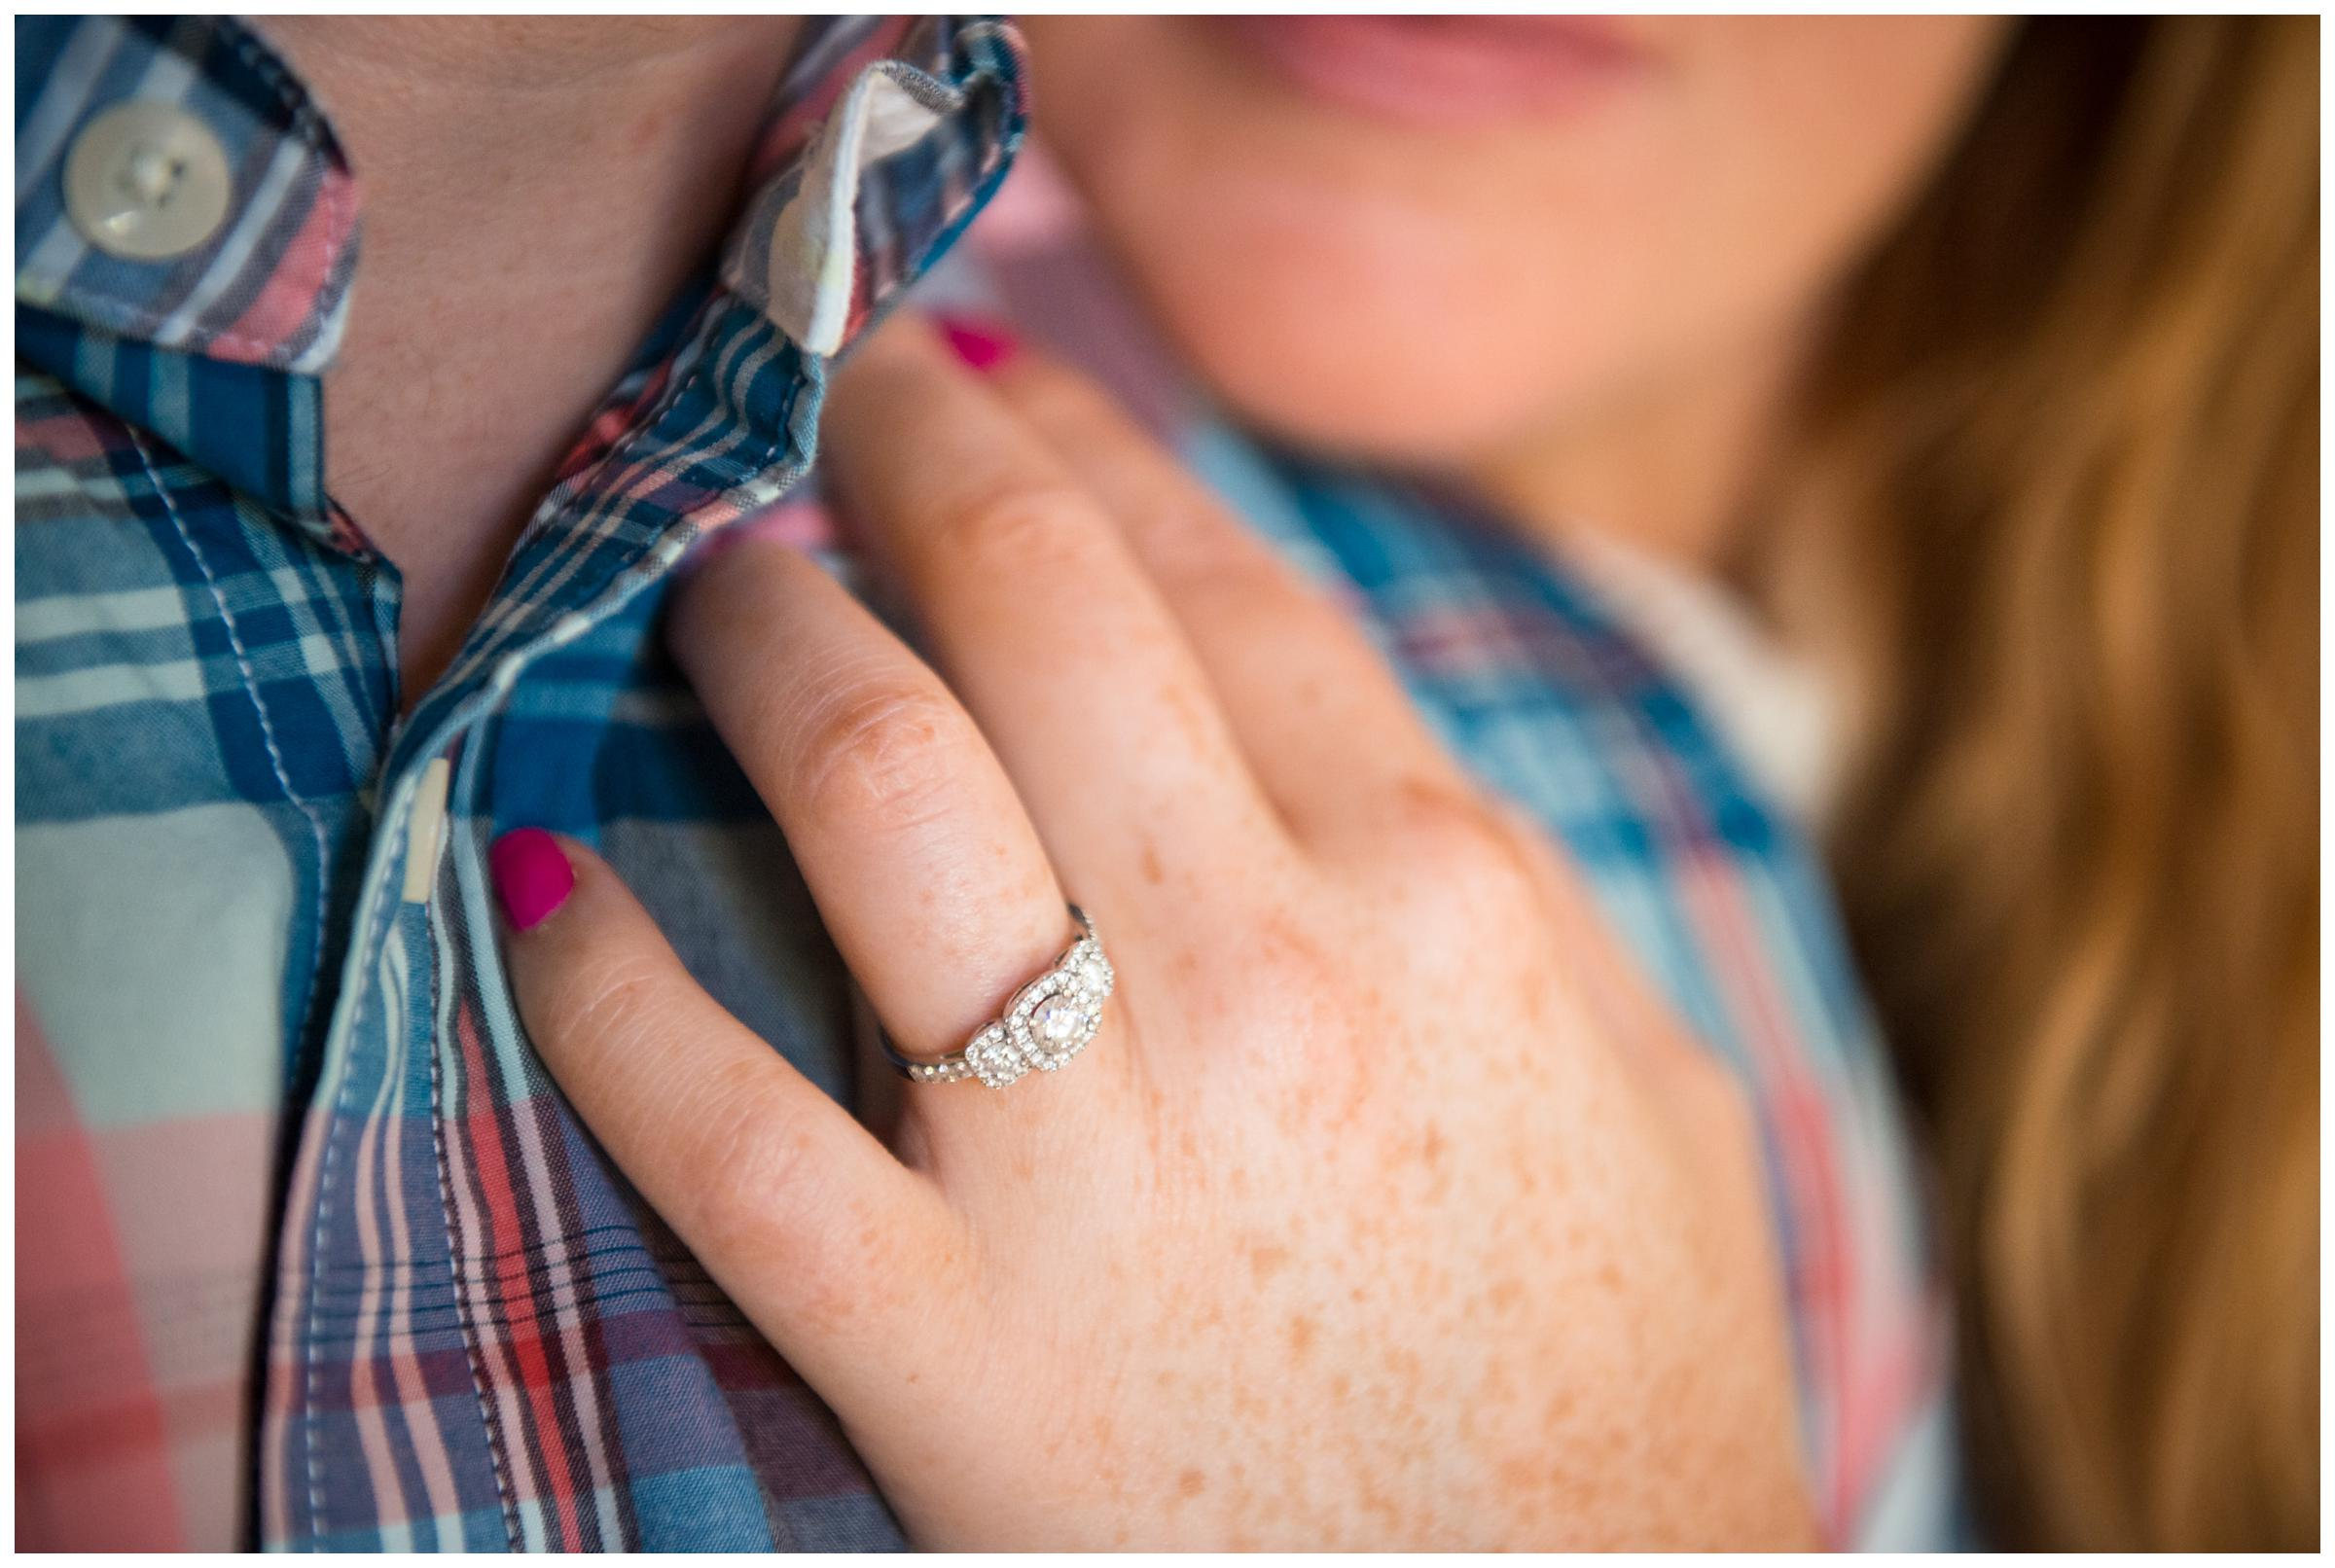 engagement ring on bride's hand